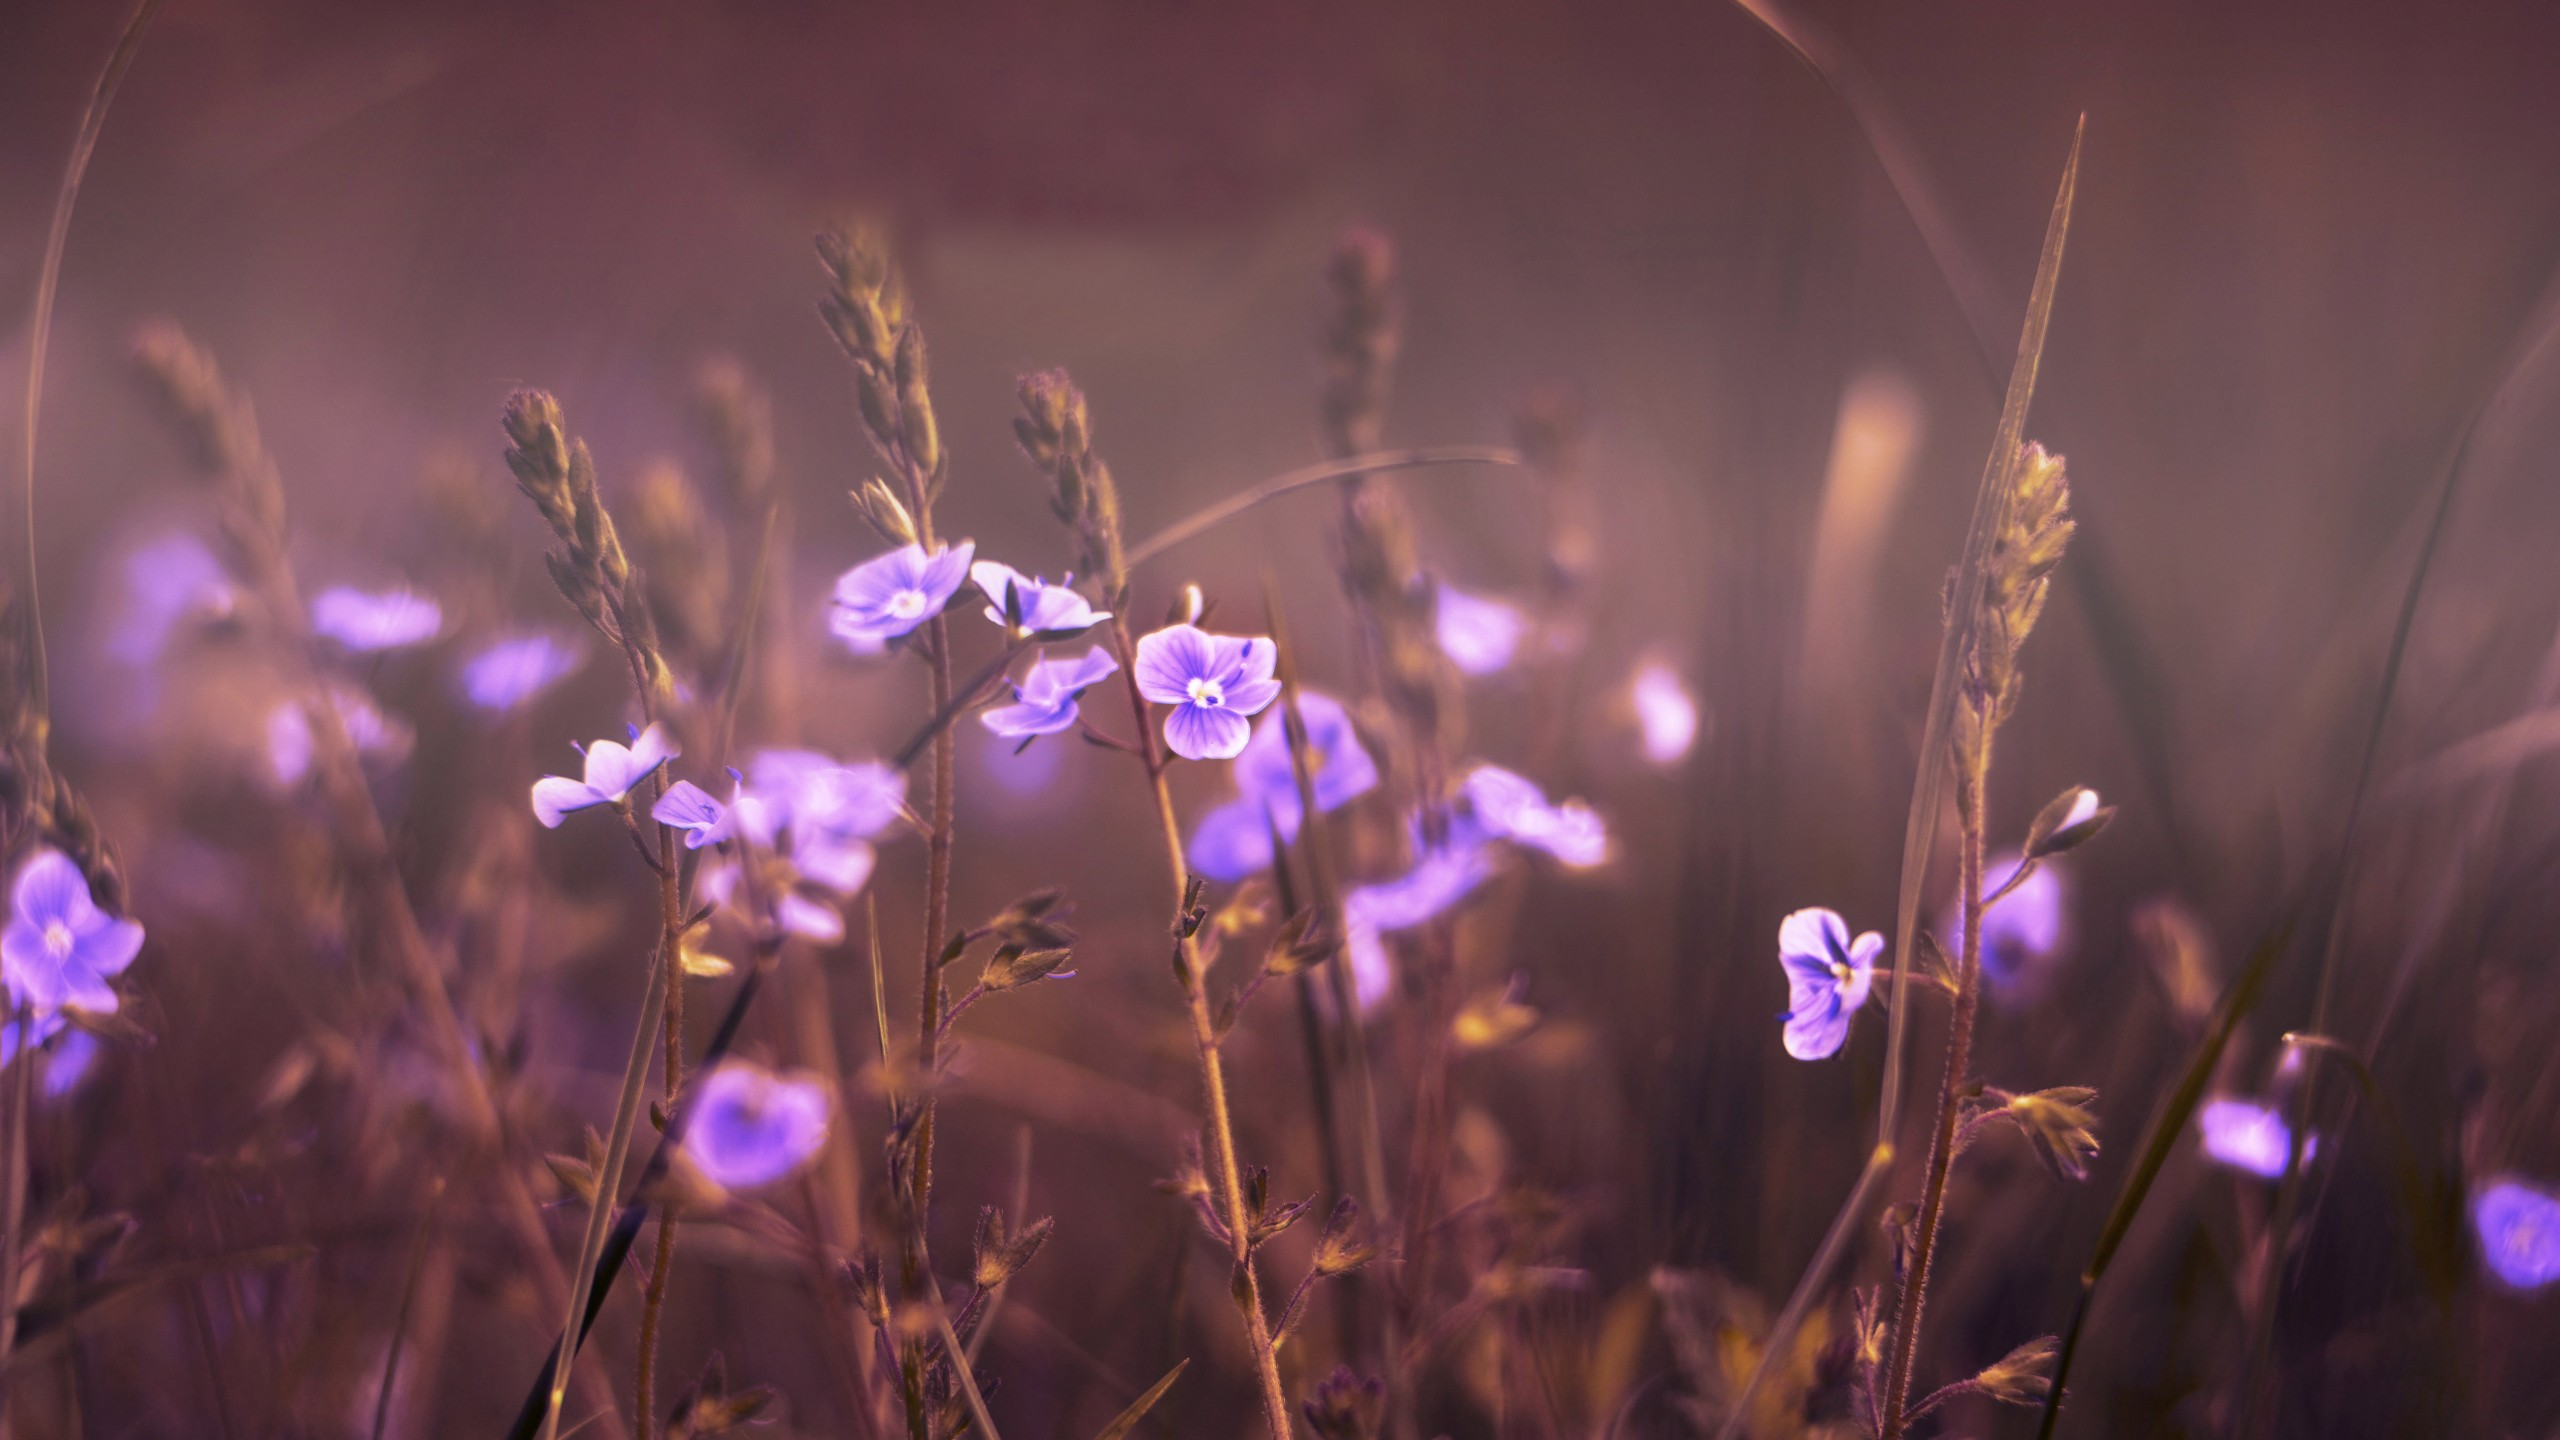 lavender flowers wallpapers 2560x1440 - photo #44